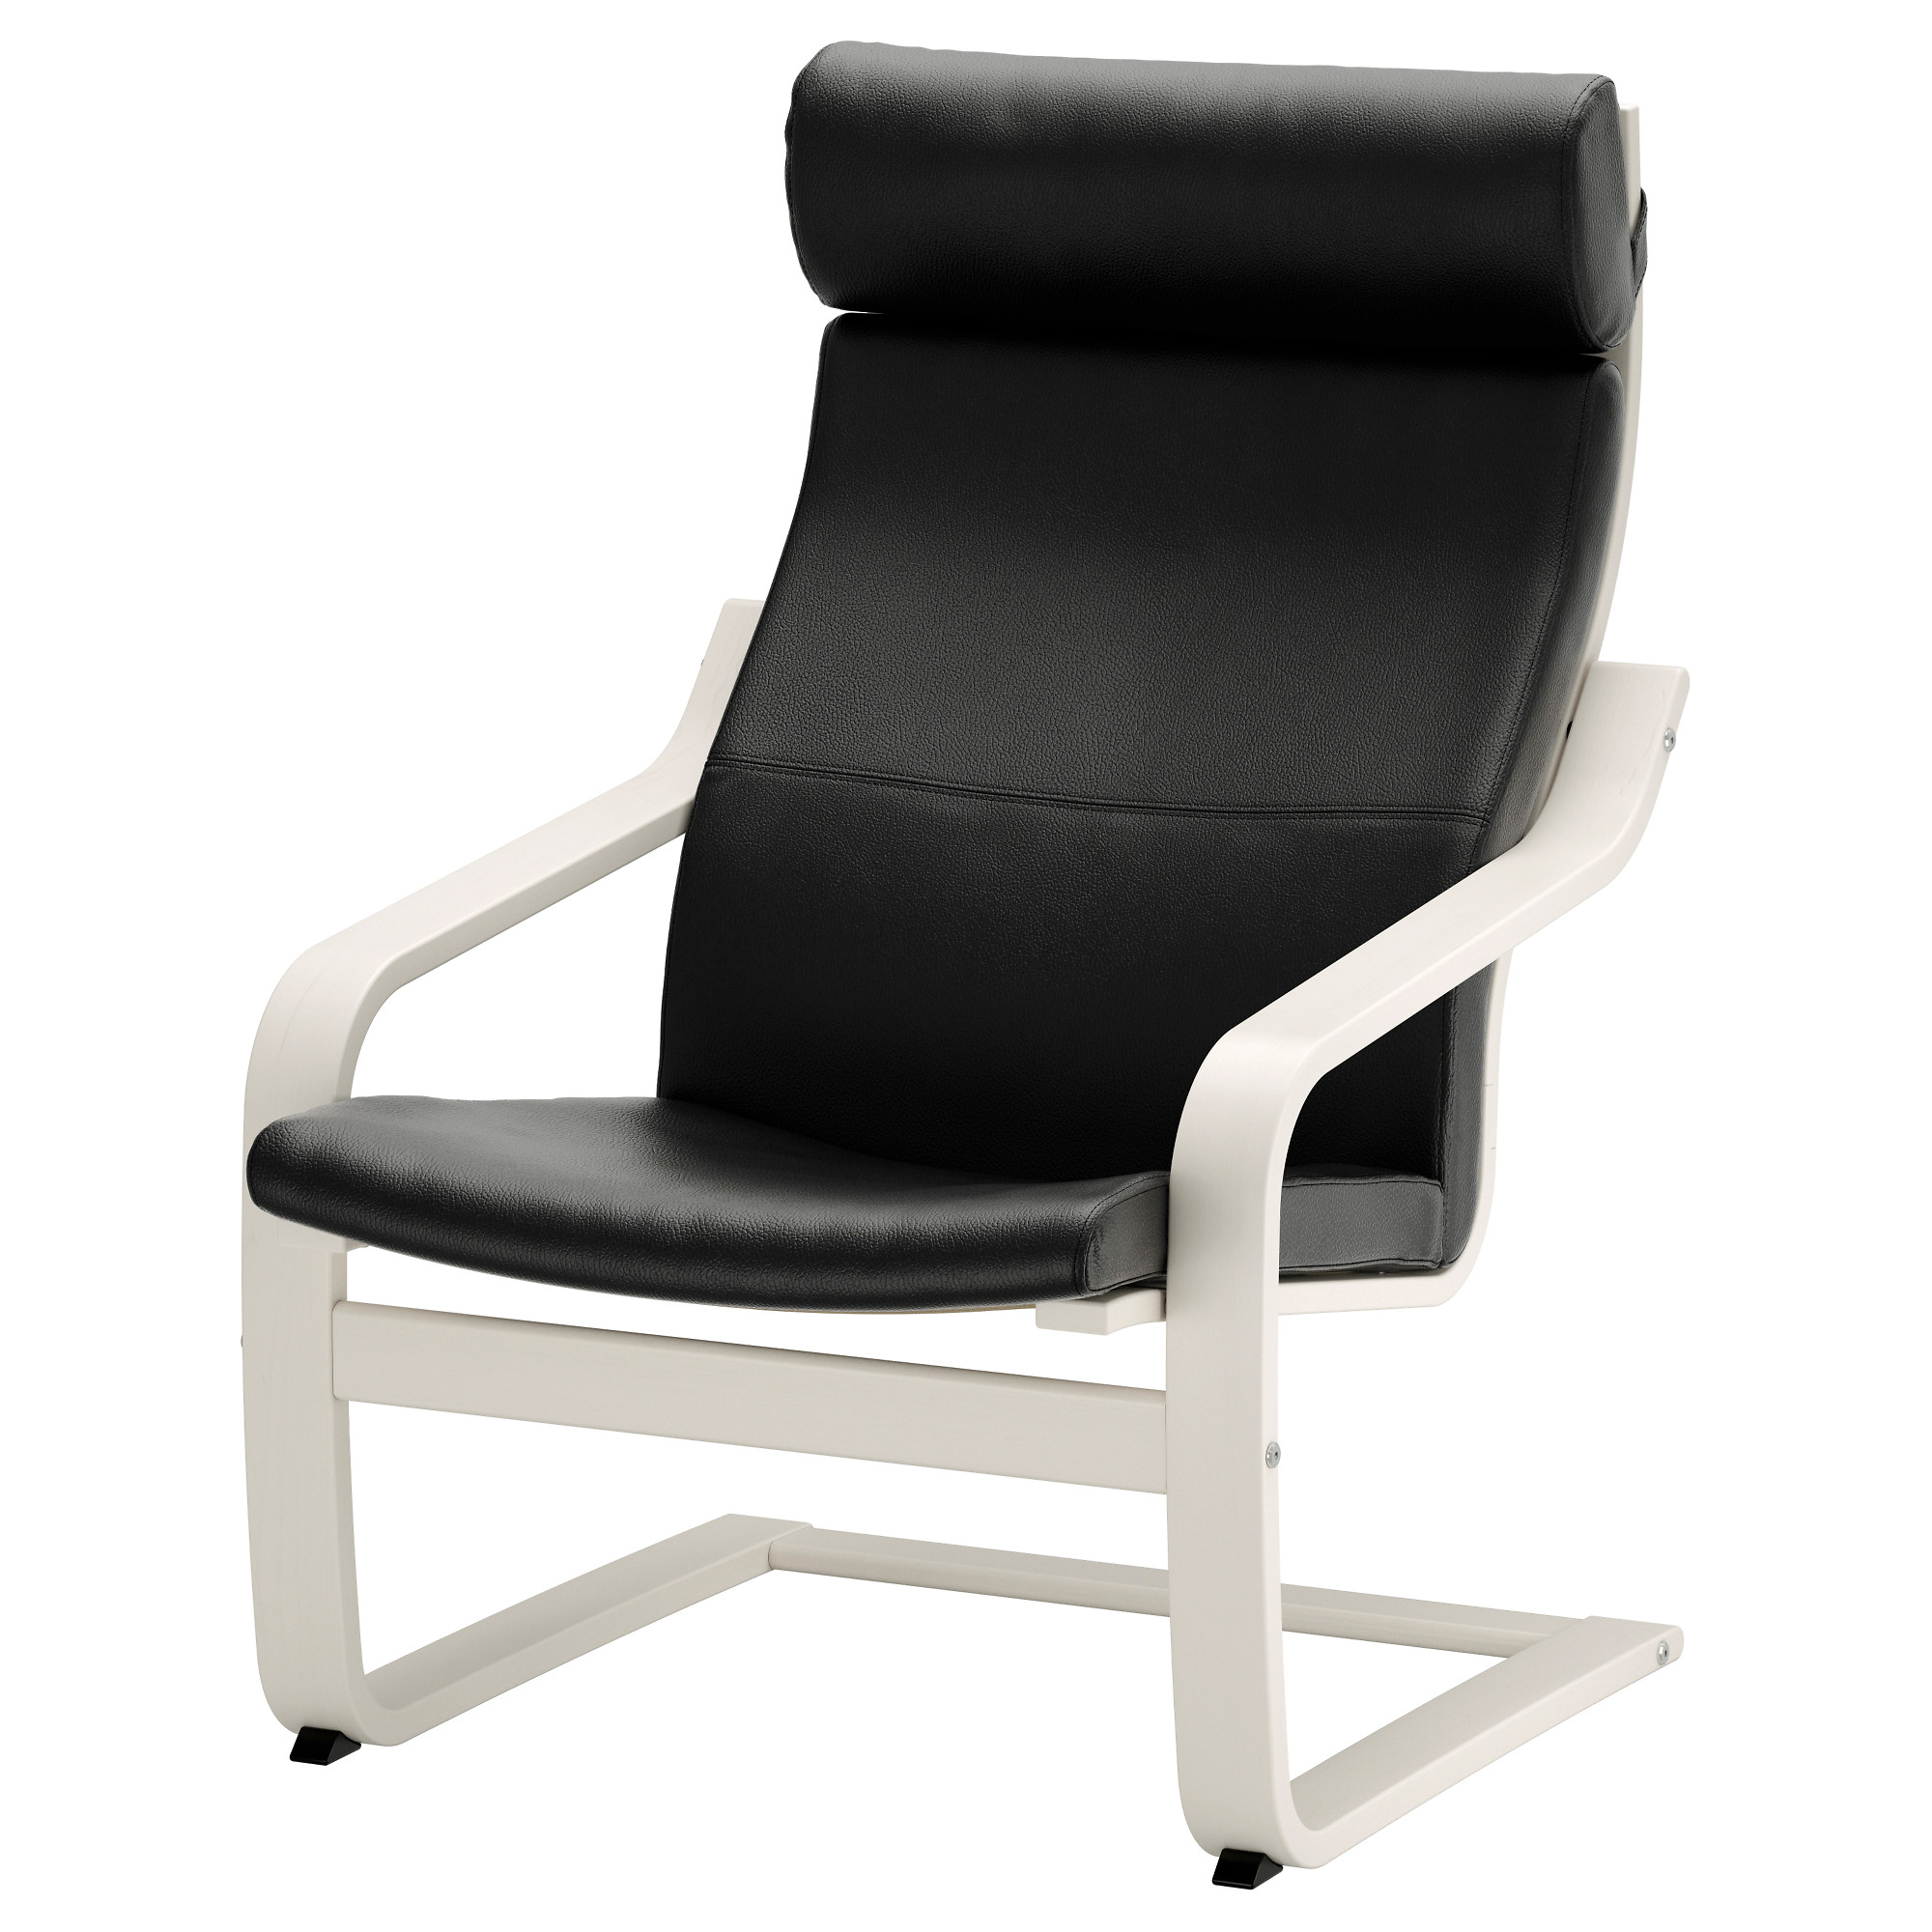 Black chair and white chair - Po Ng Chair White Glose Black Width 26 3 4 Depth